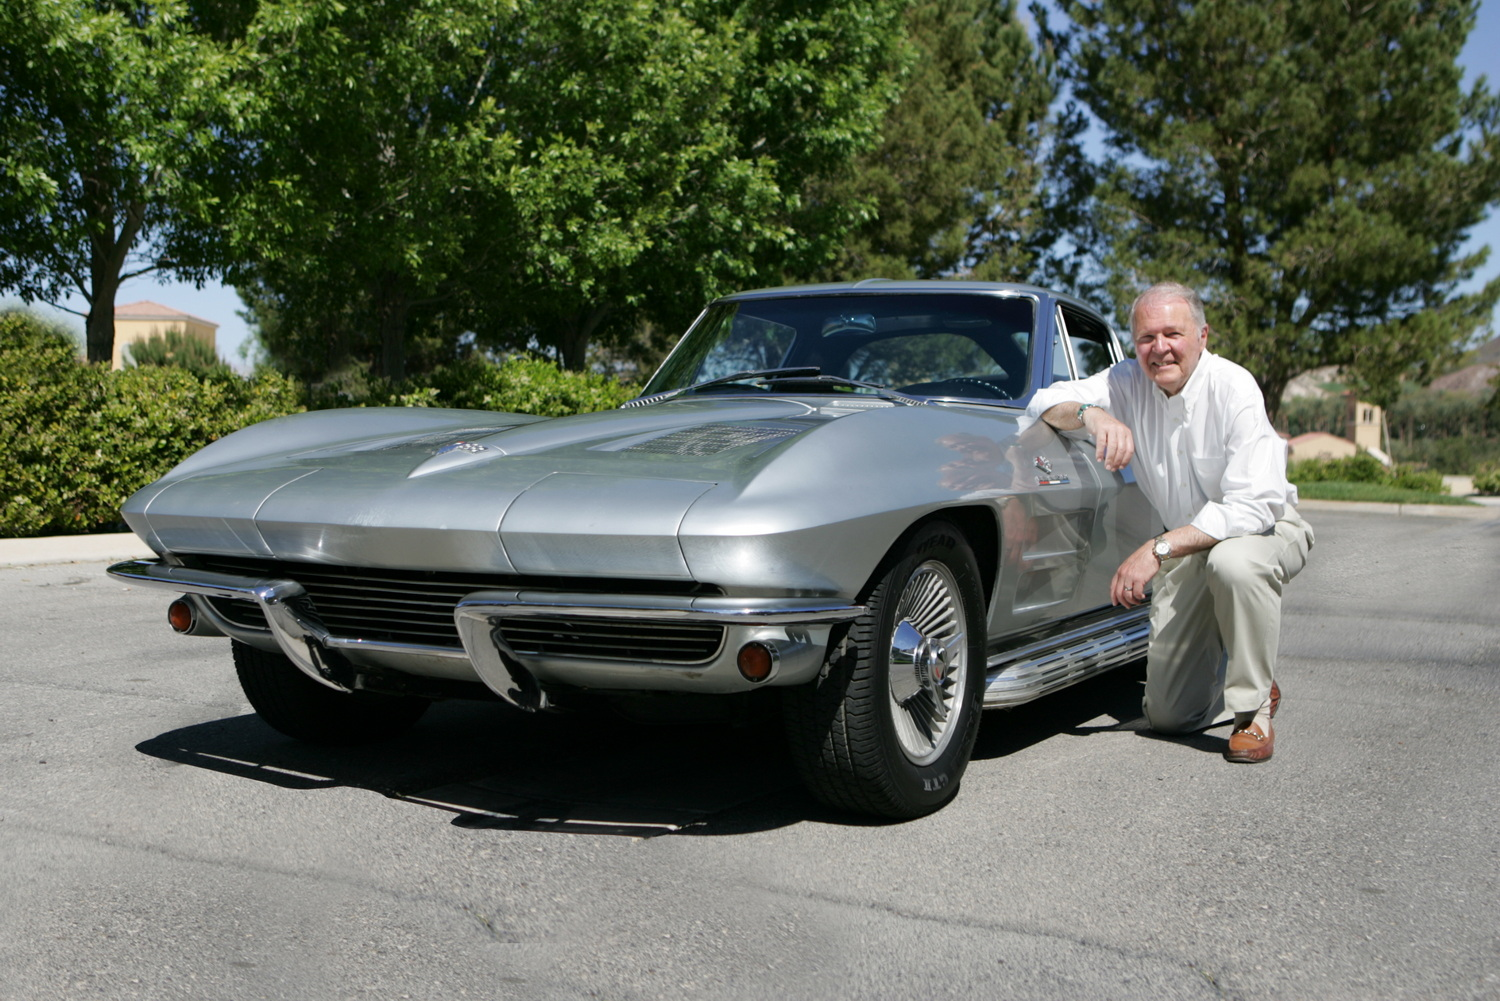 C2 Corvette designer involved in revived EV version. Image by AVA.